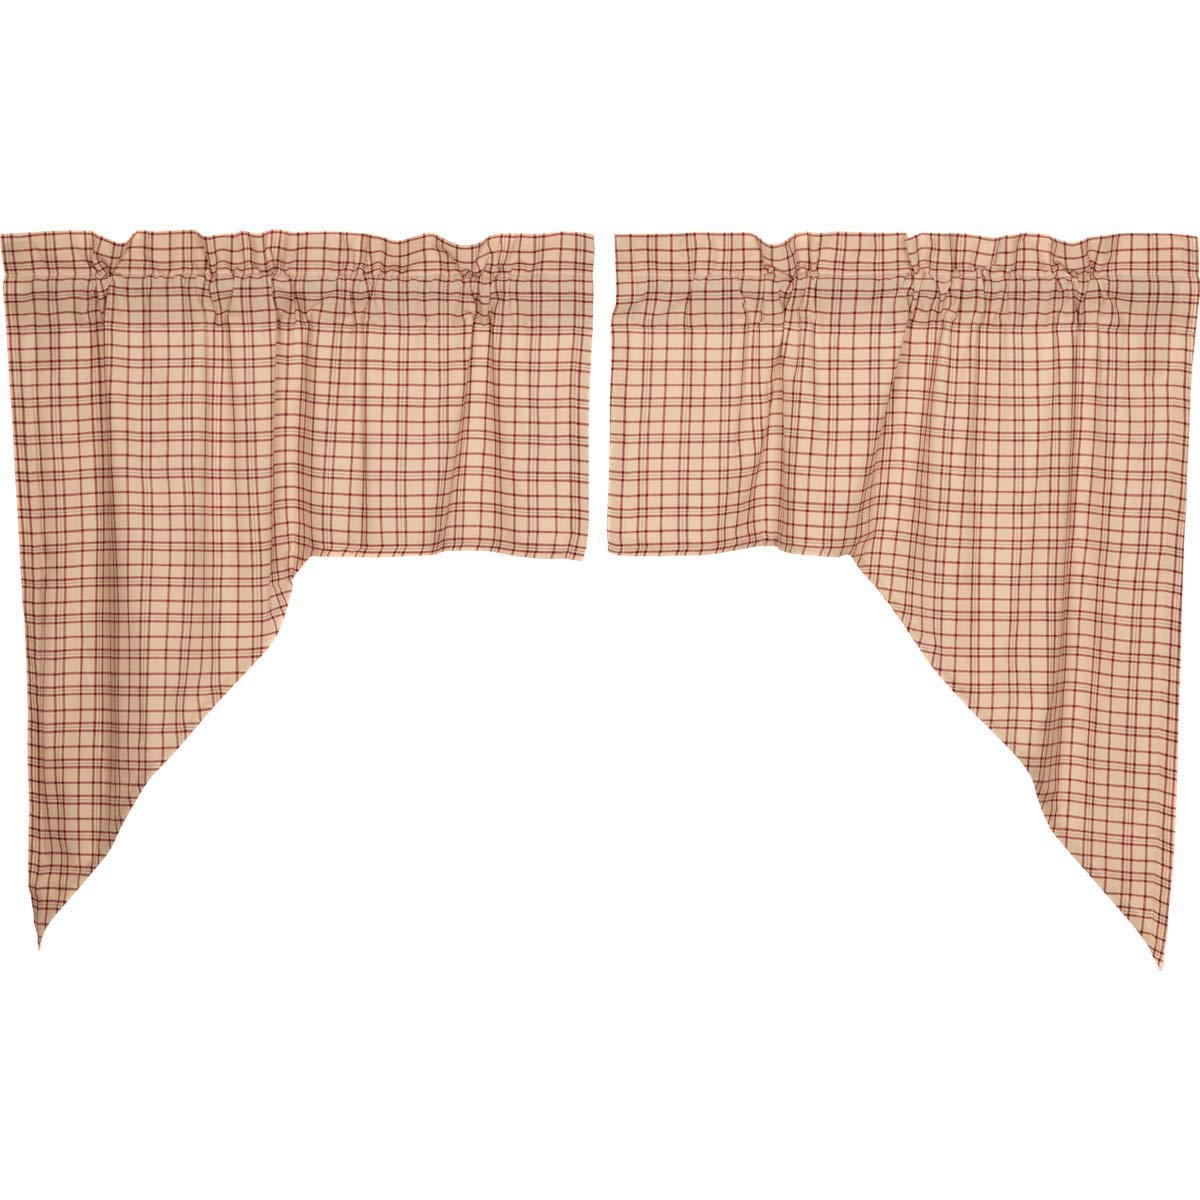 Newest Red Rustic Kitchen Curtains Throughout Vhc Brands Rustic & Lodge Kitchen Curtains Durango Rod Pocket Cotton Plaid Swag Pair, Creme White (View 20 of 20)